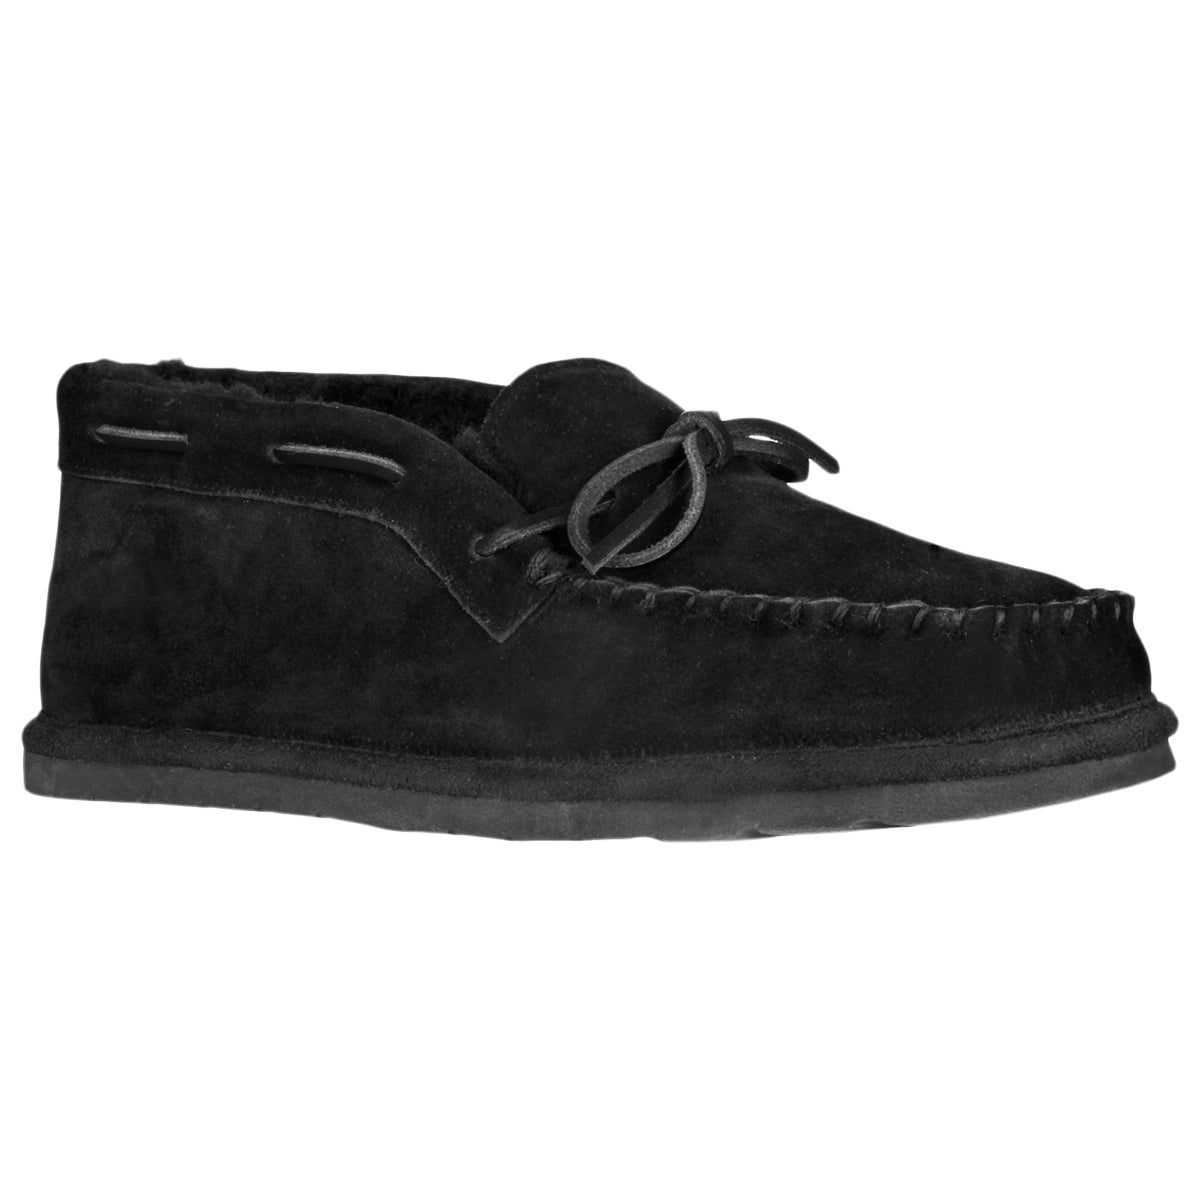 Lugz Men's 'Dudley' Suede Black Slippers